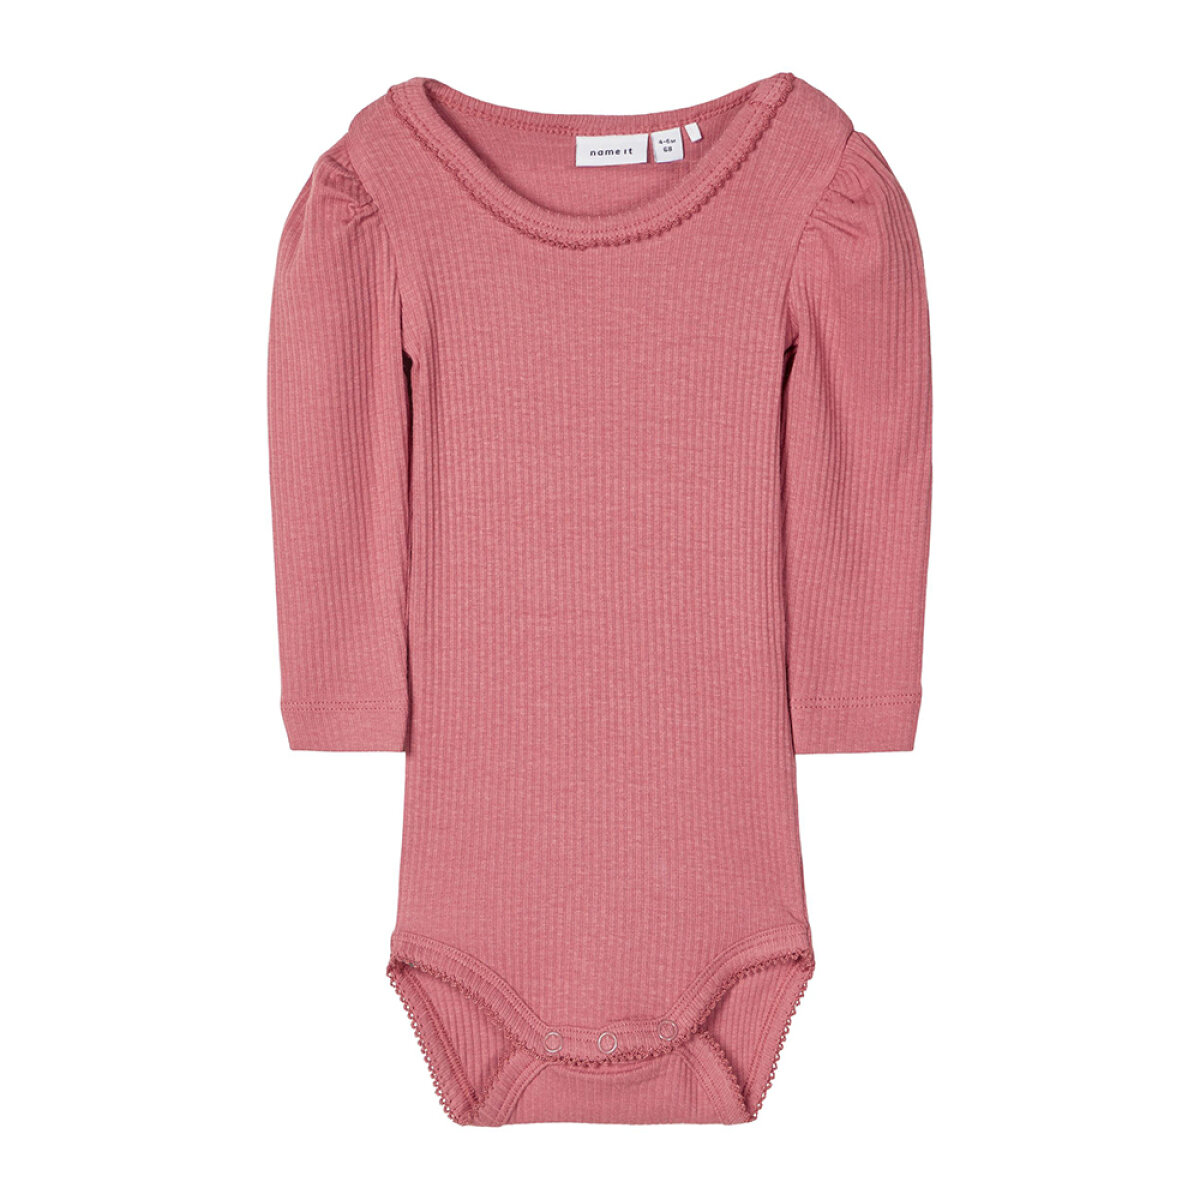 Name It meisjes romper 13187459/NBFKABEXI/WitheredRose roze